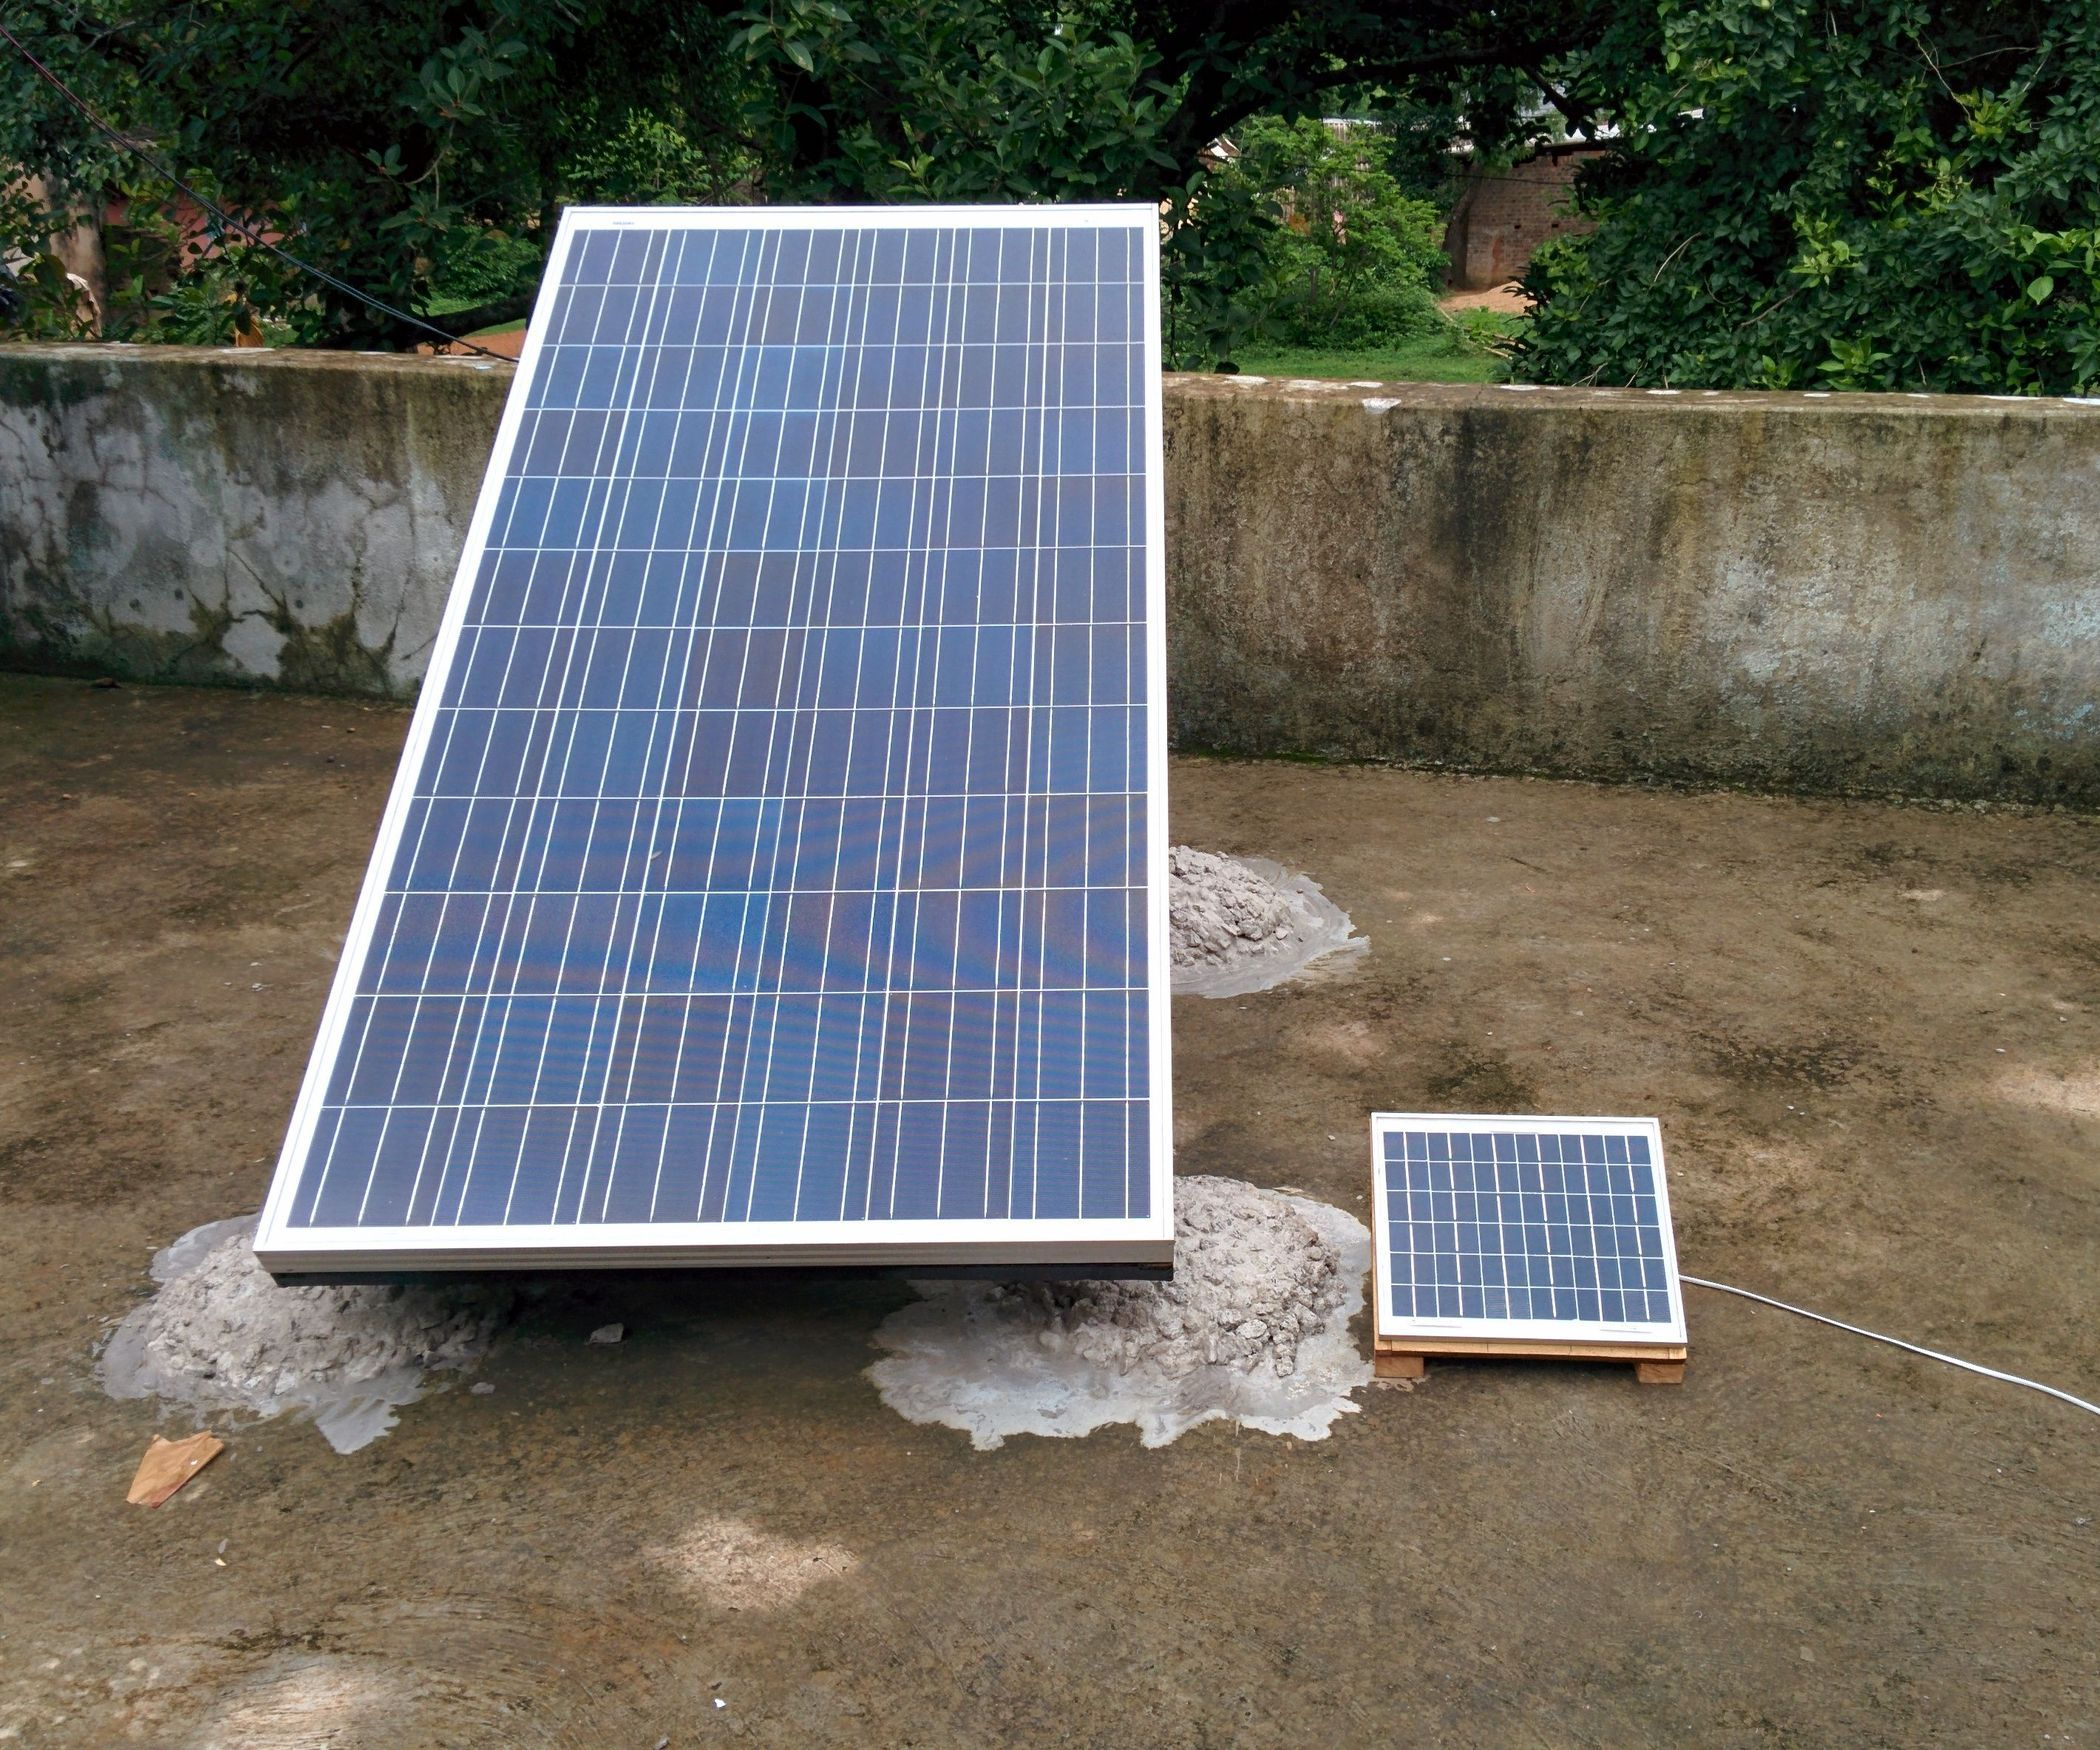 Solar For Home Use Price In India Home Solar System Technology Solar Equipments For Home 246450 Solar Power House Solar Energy For Home Solar Panels For Home